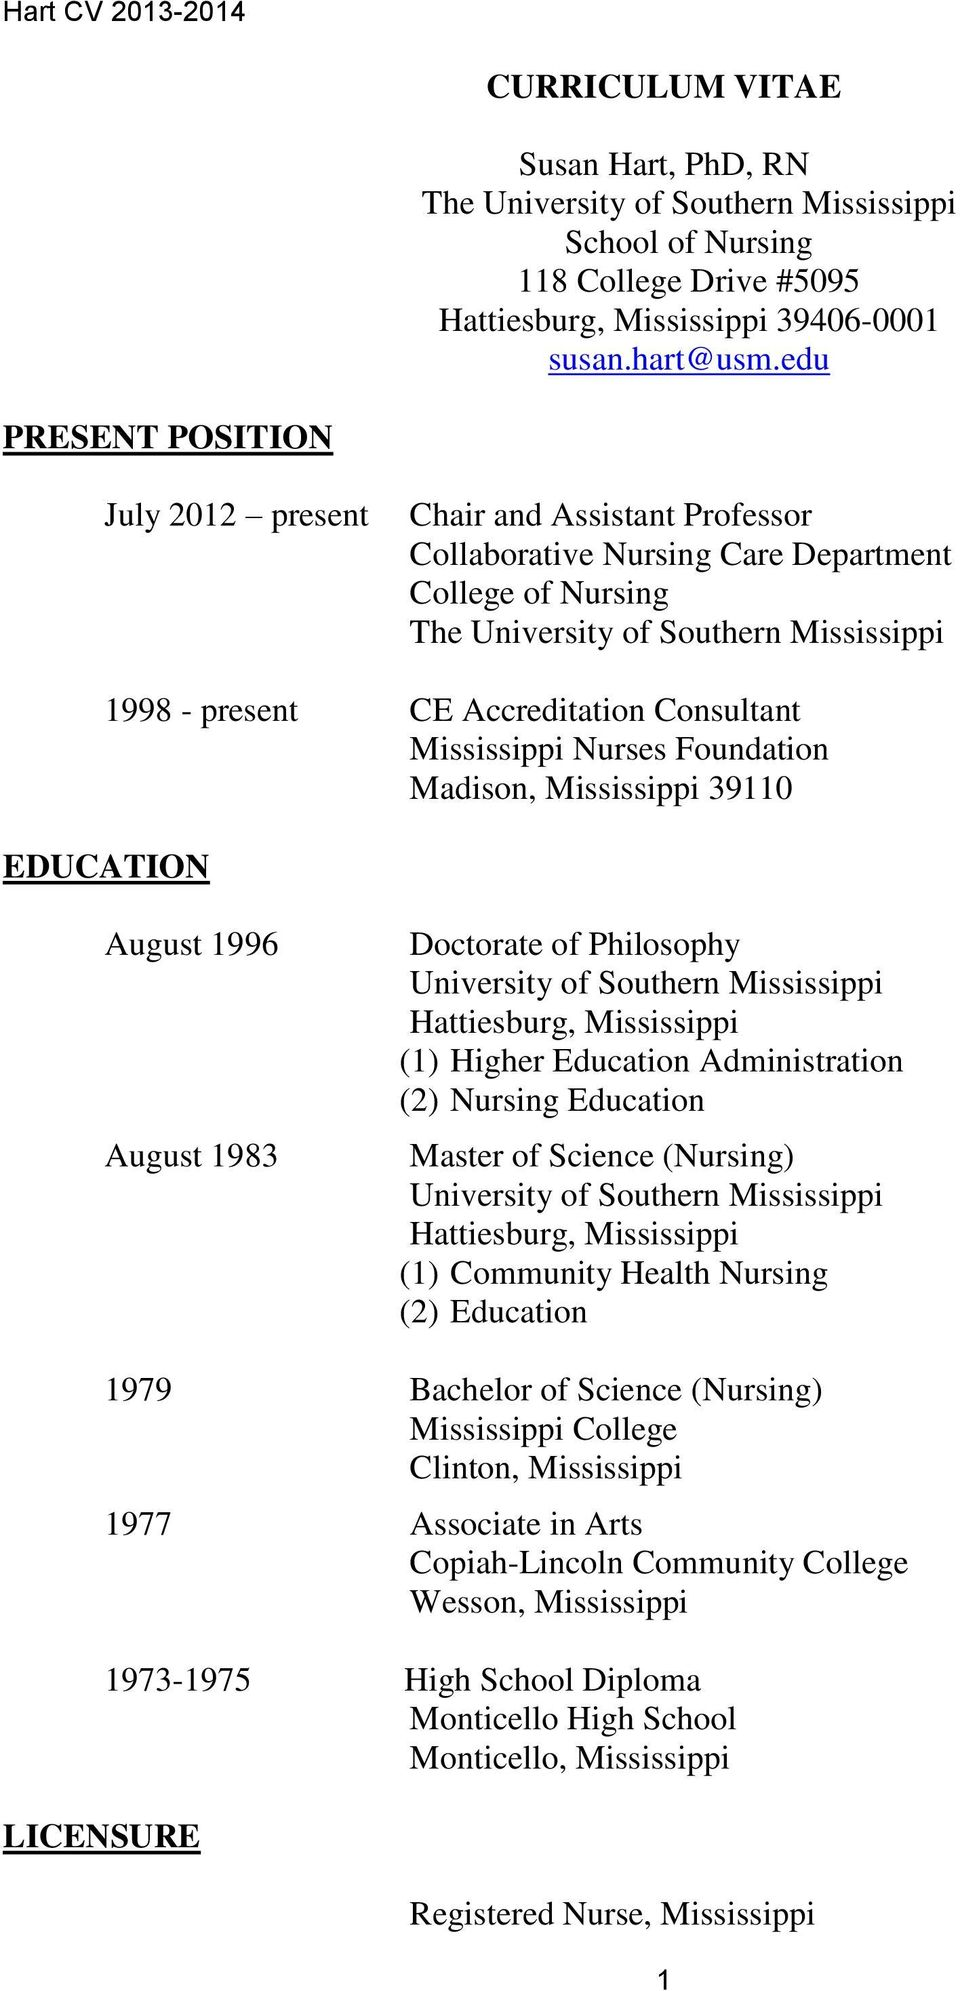 Consultant Mississippi Nurses Foundation Madison, Mississippi 39110 EDUCATION August 1996 August 1983 Doctorate of Philosophy University of Southern Mississippi Hattiesburg, Mississippi (1) Higher